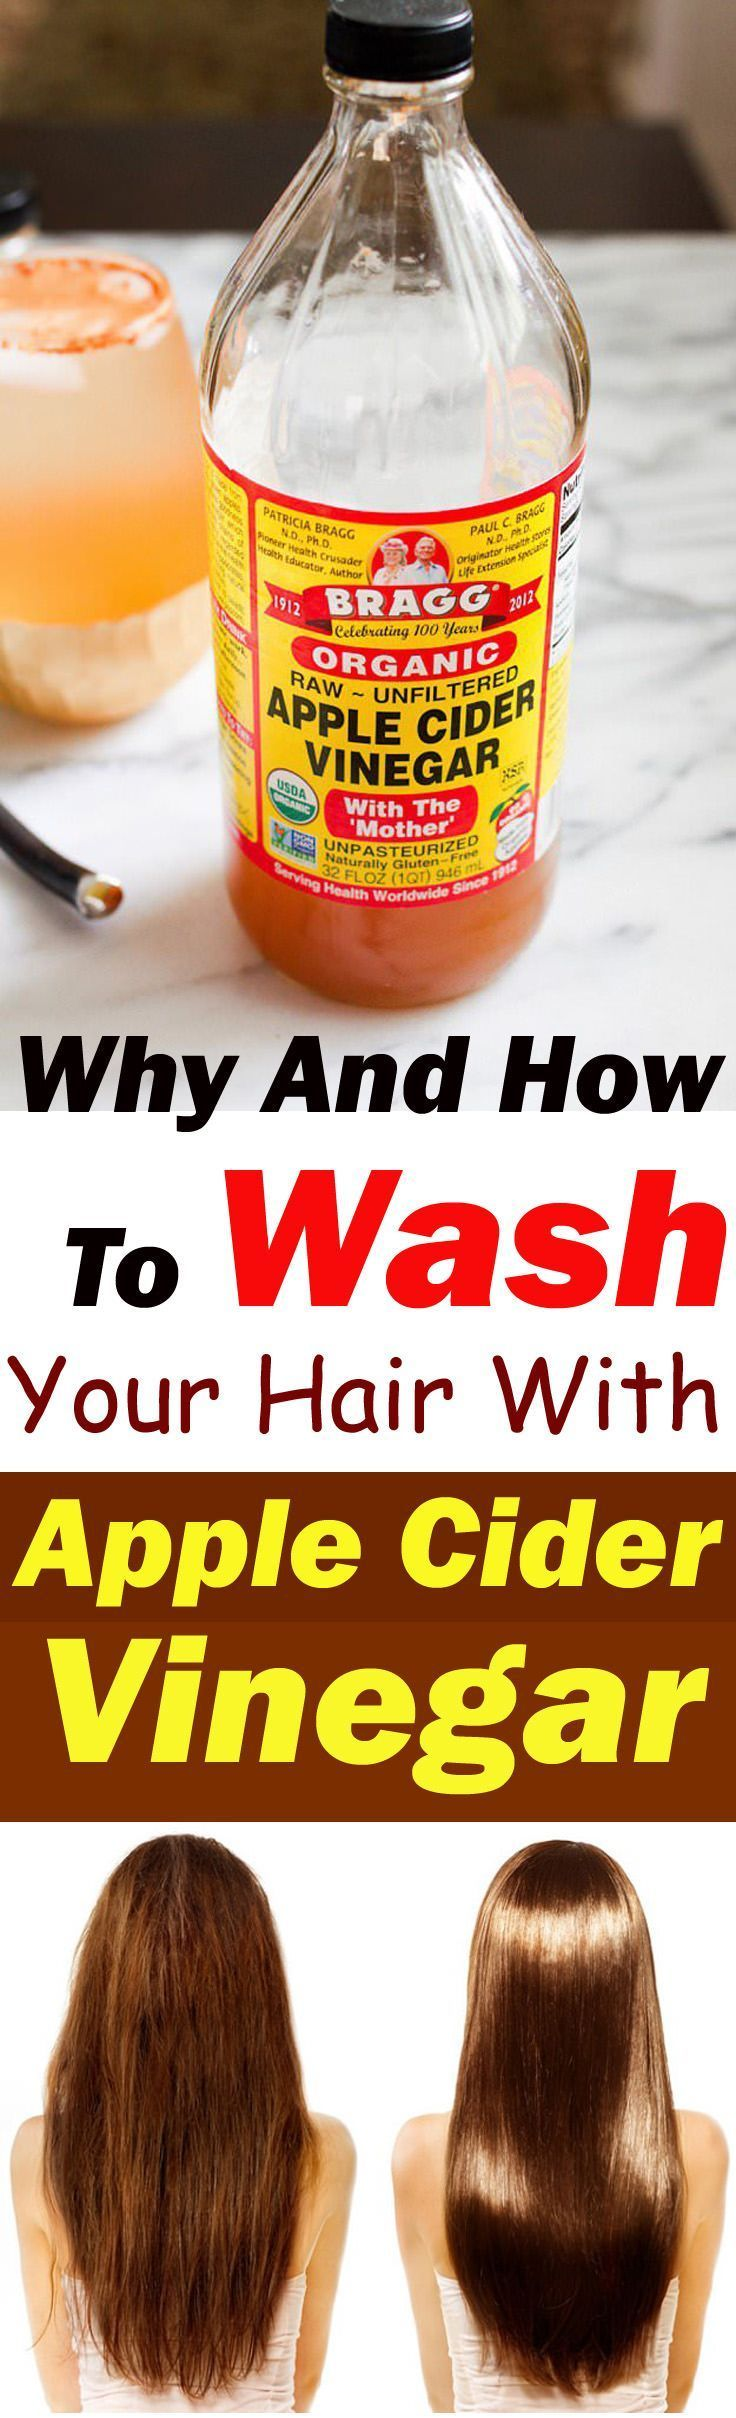 If you have not started using apple cider vinegar on your